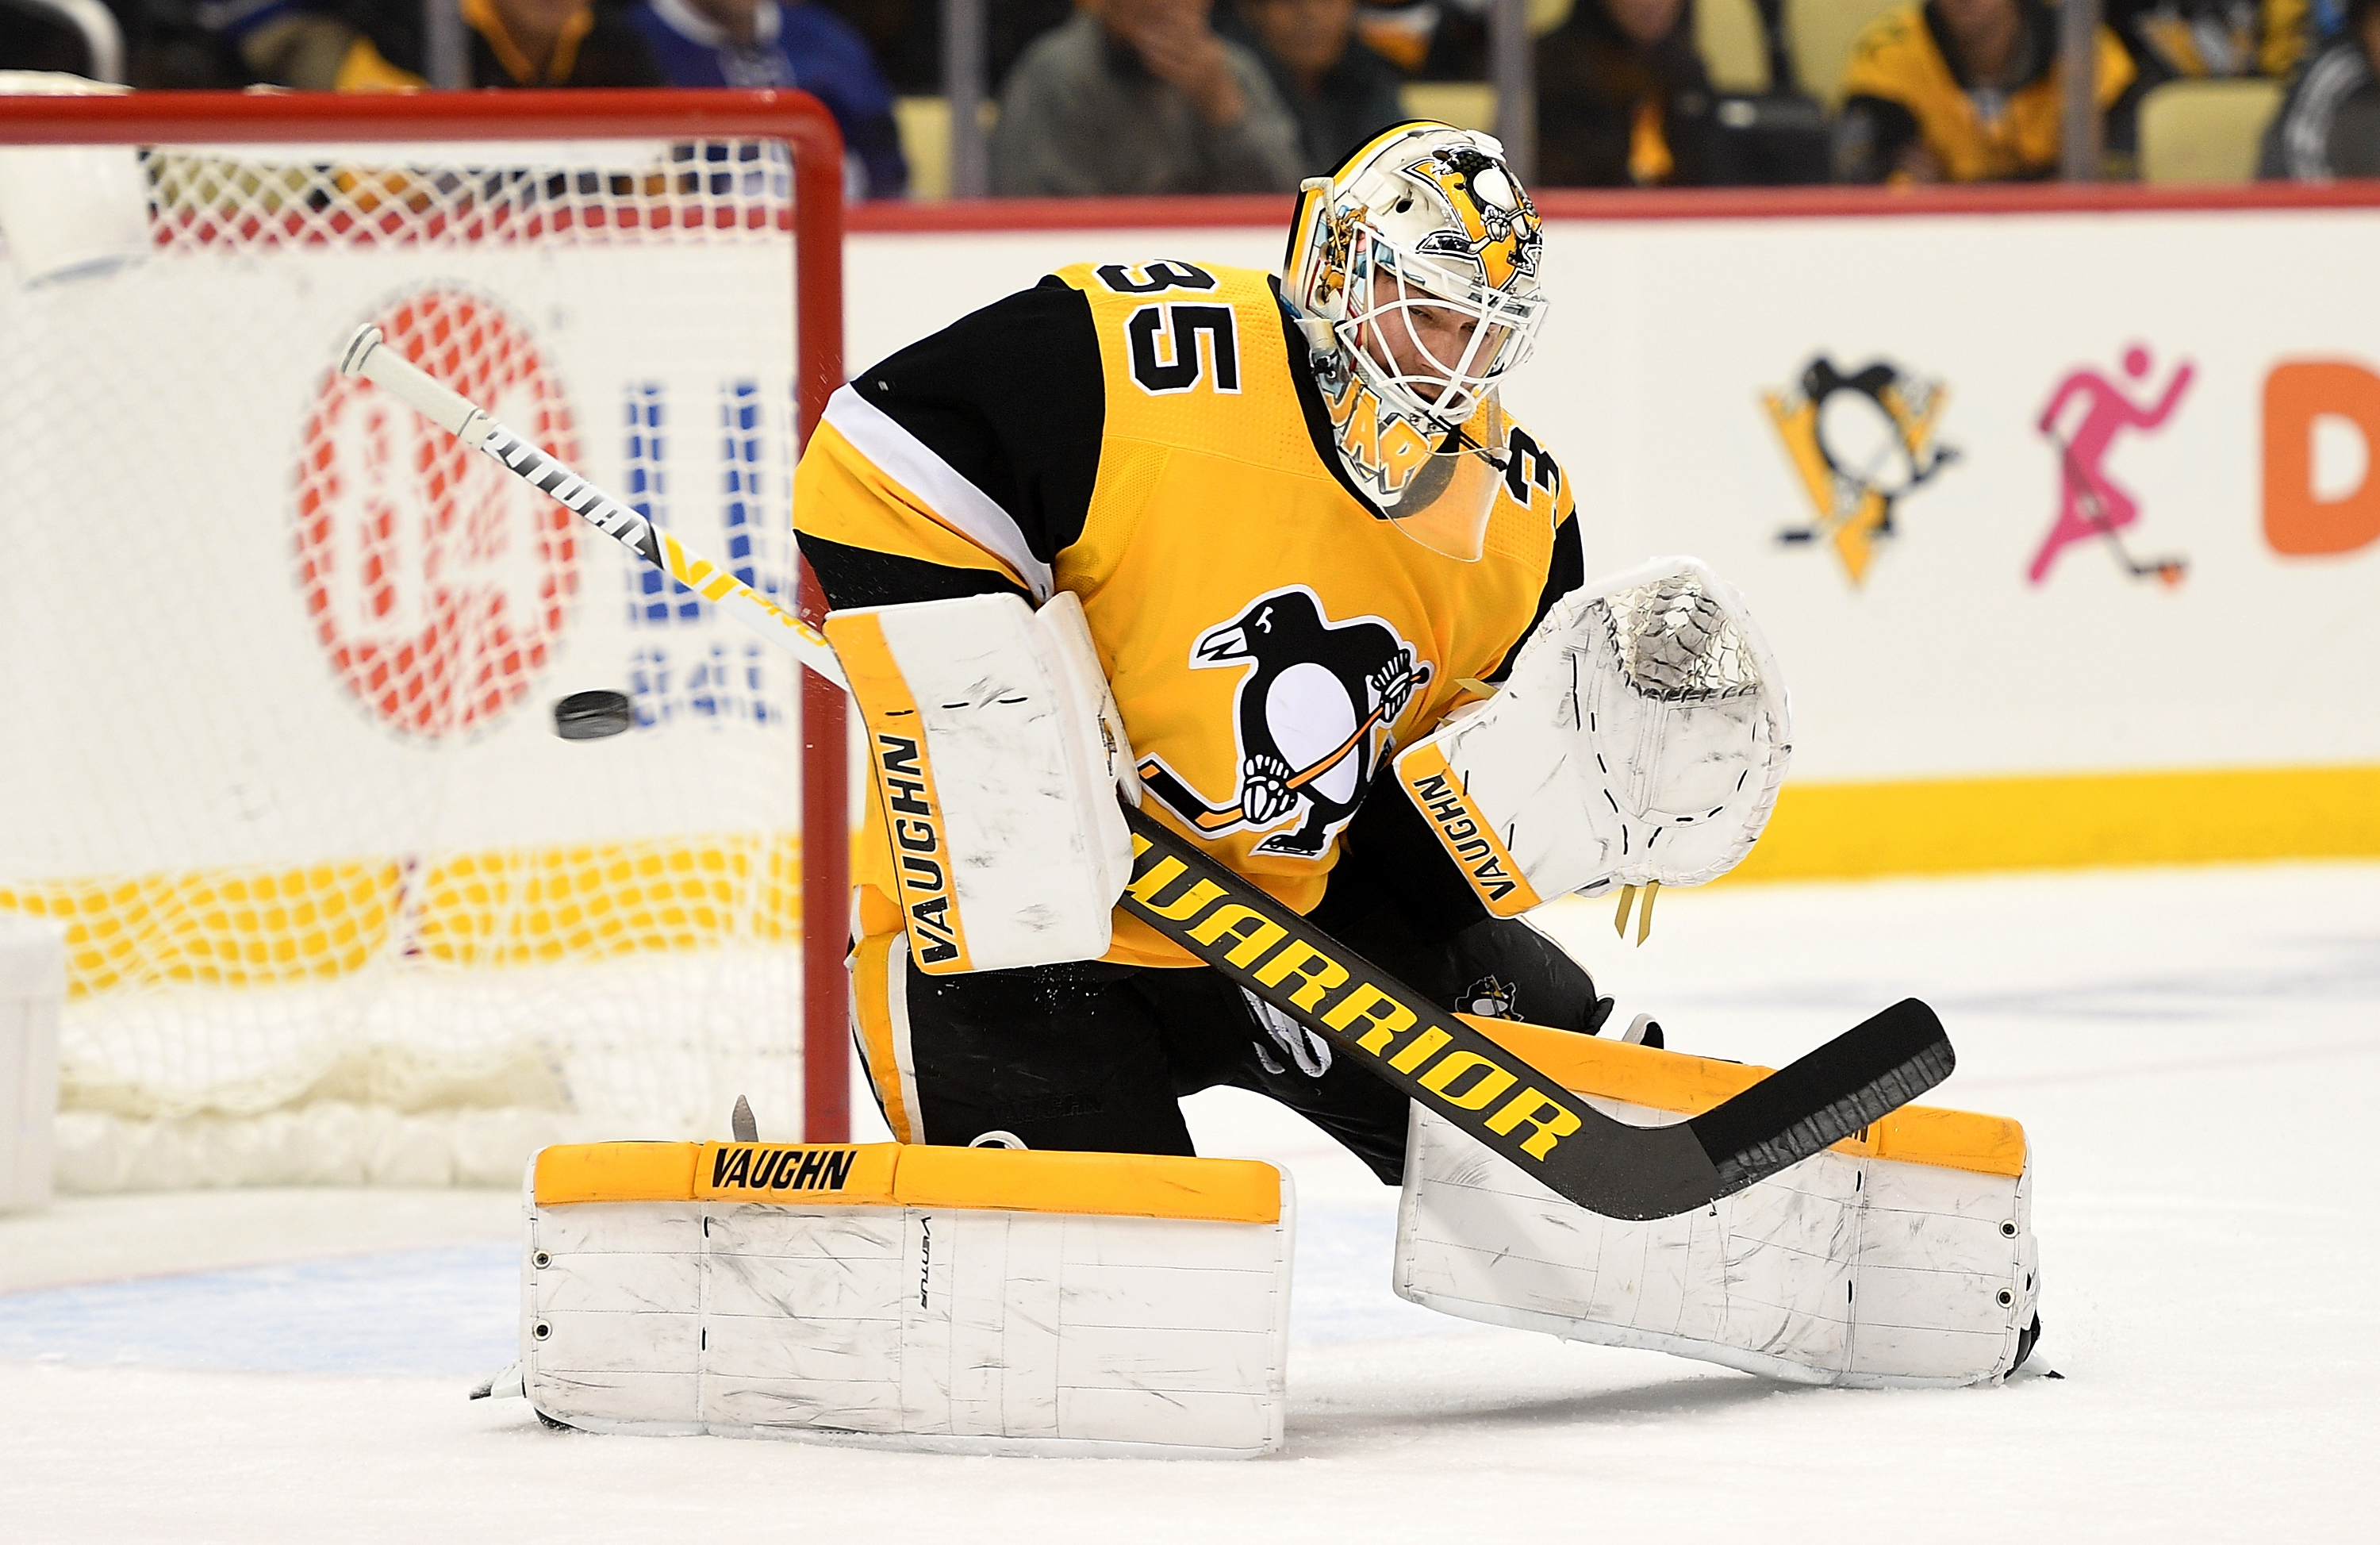 NHL: NOV 16 Maple Leafs at Penguins